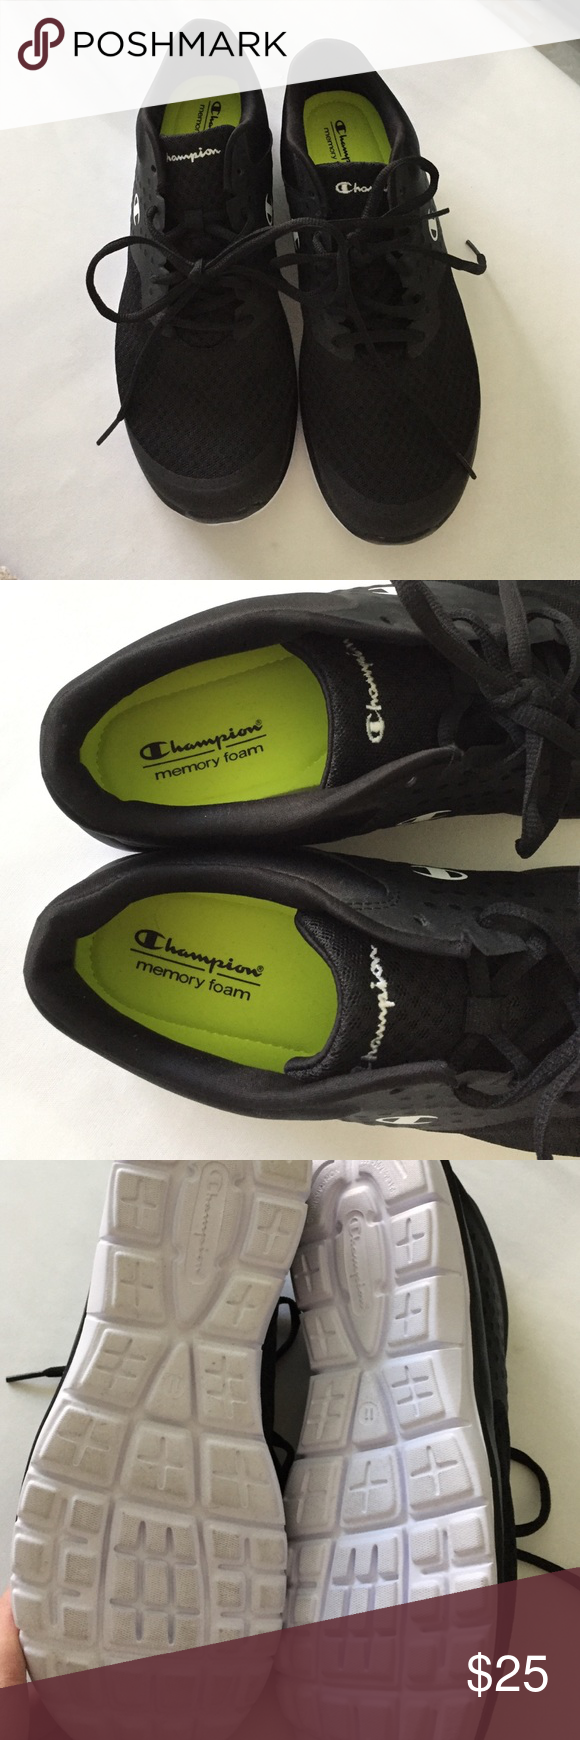 c7316b6289a NWOT size 11 champion sneakers. Never worn NWOT black champion size 11 sneakers  memory foam insole. Super comfy Champion Shoes Athletic Shoes